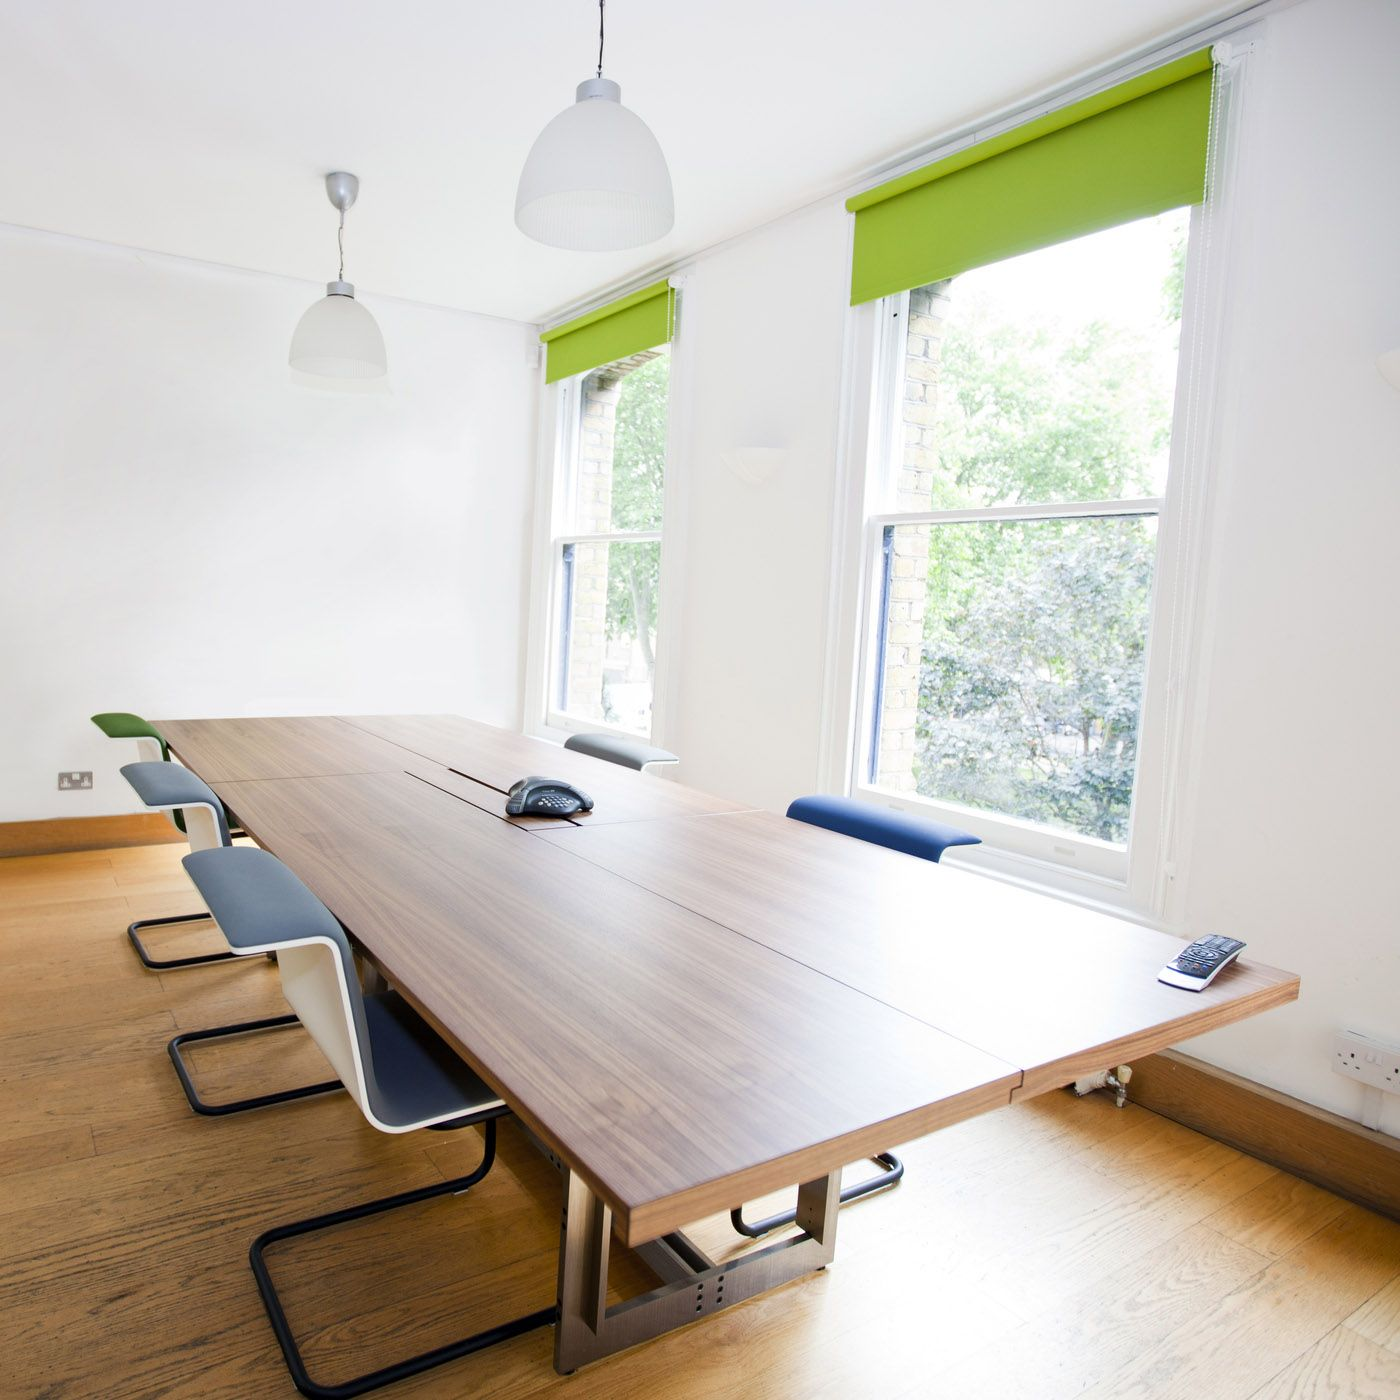 Office table janitorial cleaning services in cohoes ny